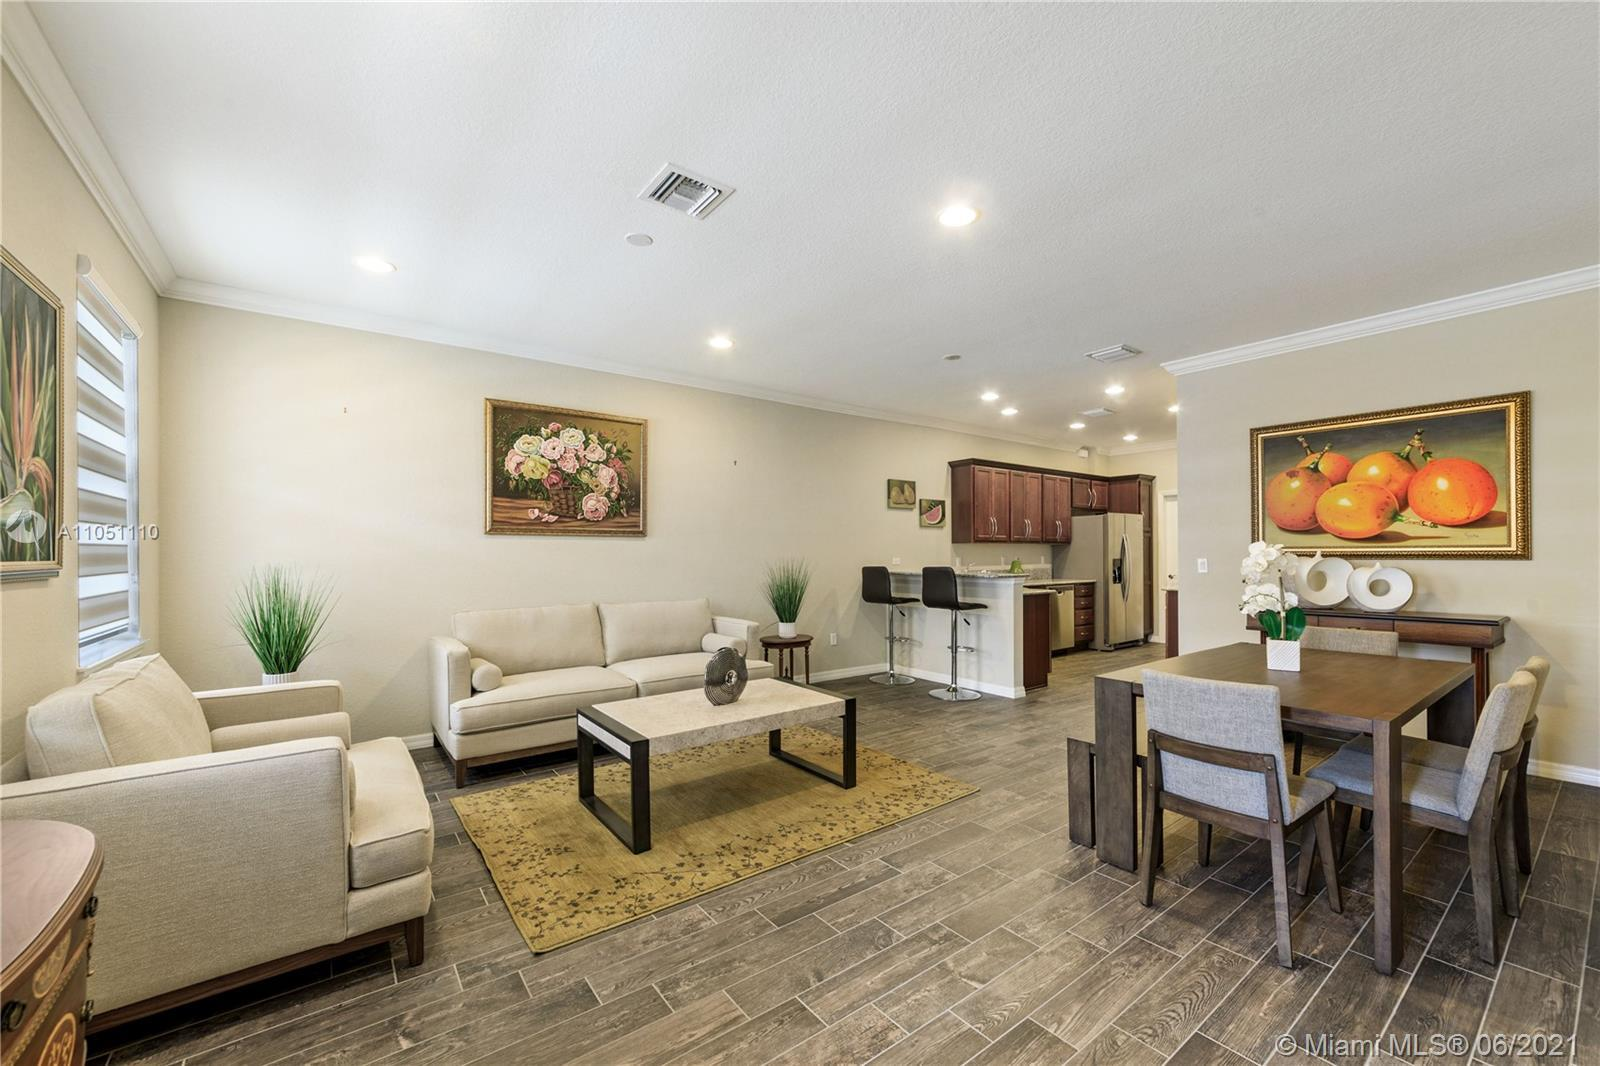 WELCOME TO HOLLYWOOD'S NEWEST GATED COMMUNITY! THIS MAGNOLIA MODEL TOWNHOME OFFERS 3 BEDROOMS AND 2.